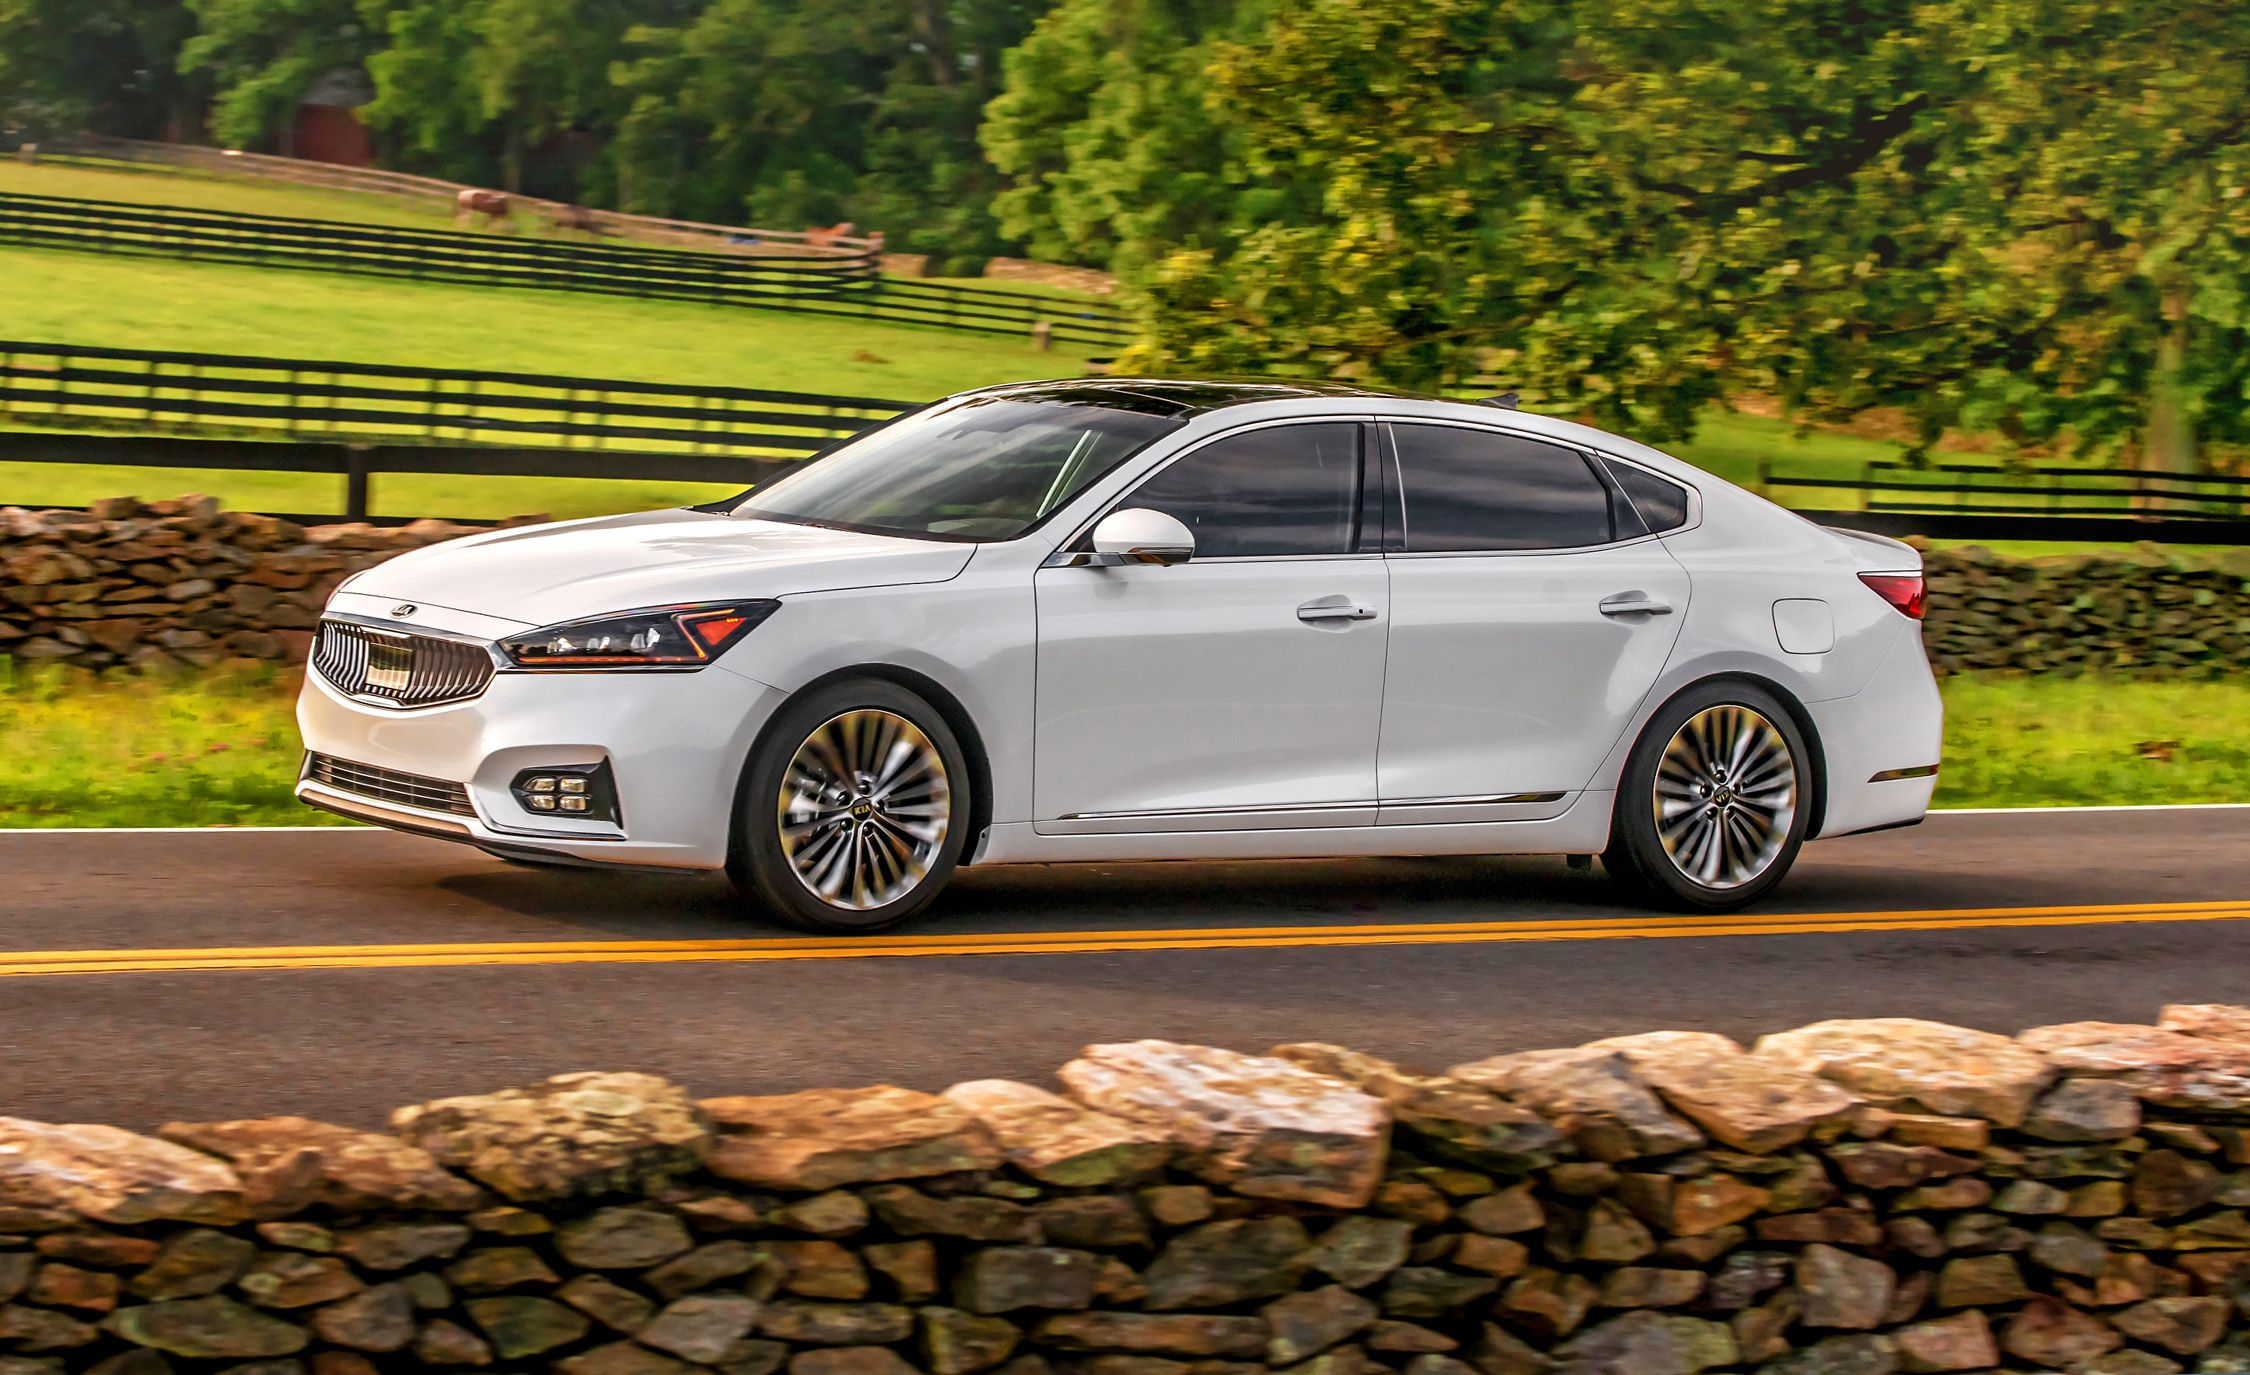 2018 Kia Cadenza | In-Depth Model Review | Car and Driver